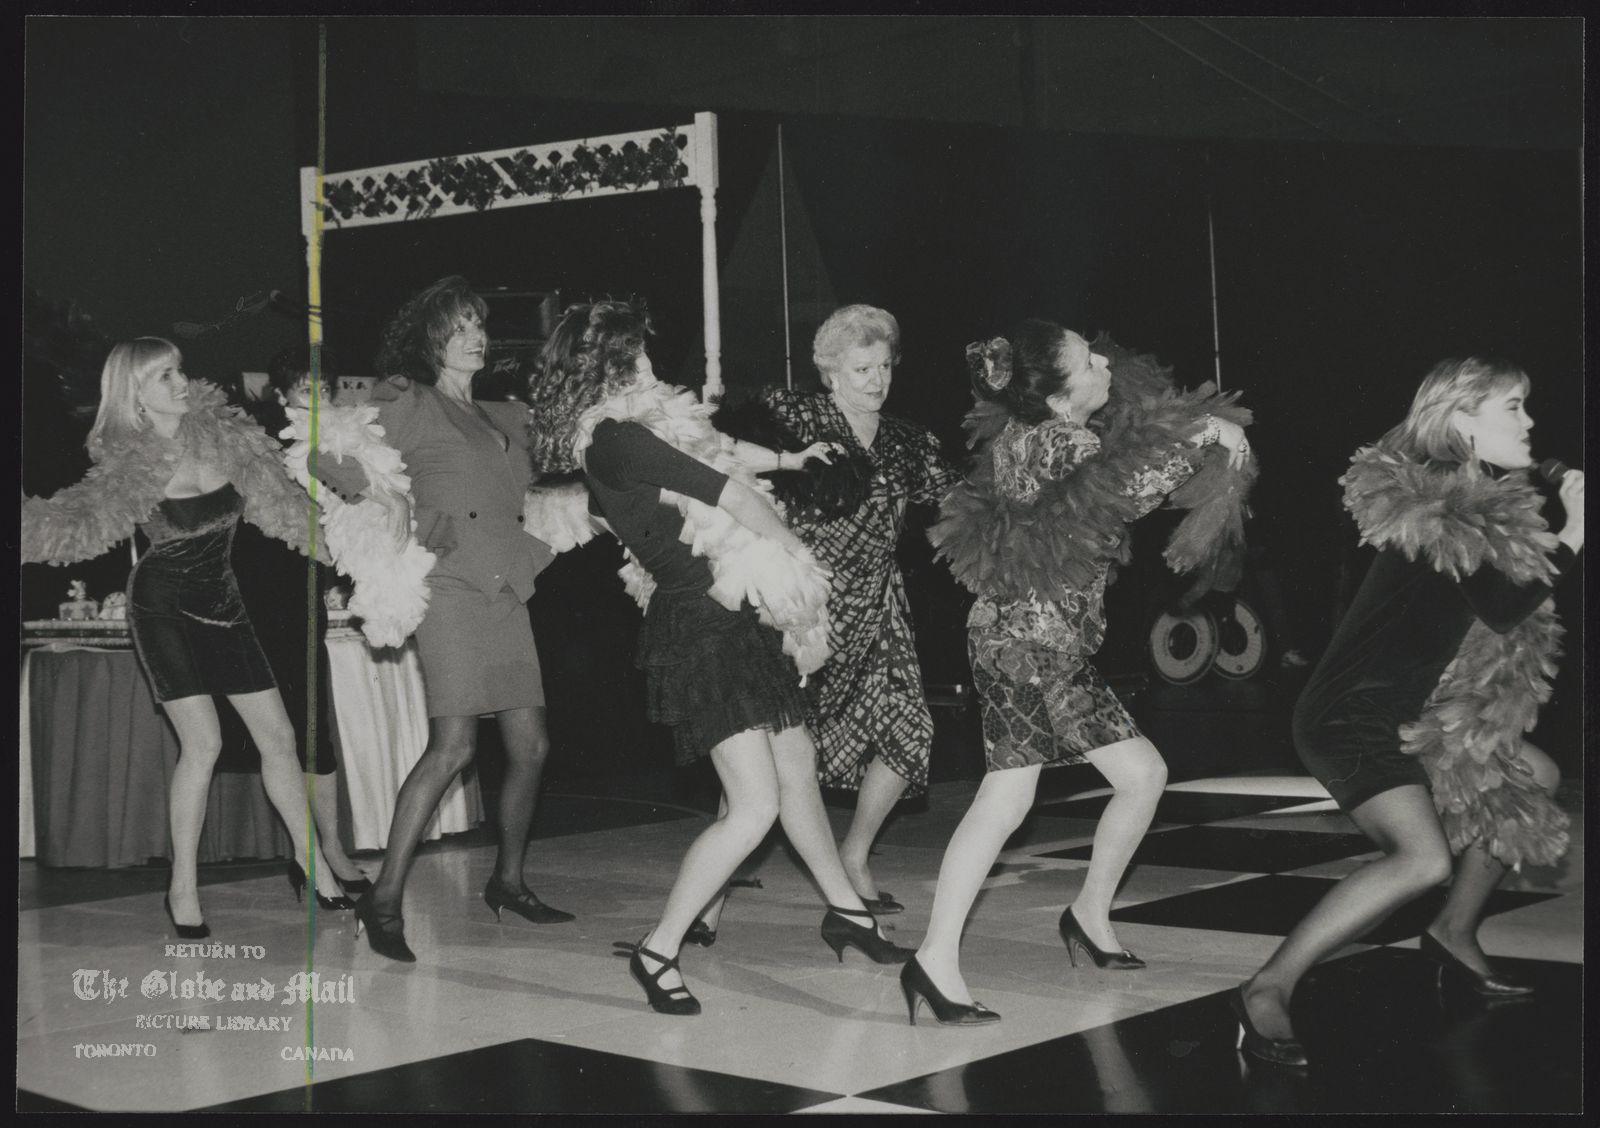 VARIETY VILLAGE (Toronto) Trend toward hiring professionals to help raise money has been eliminated or reduced. At Variety Village party two dancers (second from left and far right) were interspersed with celebrity volunteers Micki Moore (far left), Maureen Forrester and socialite Valerie Fine.